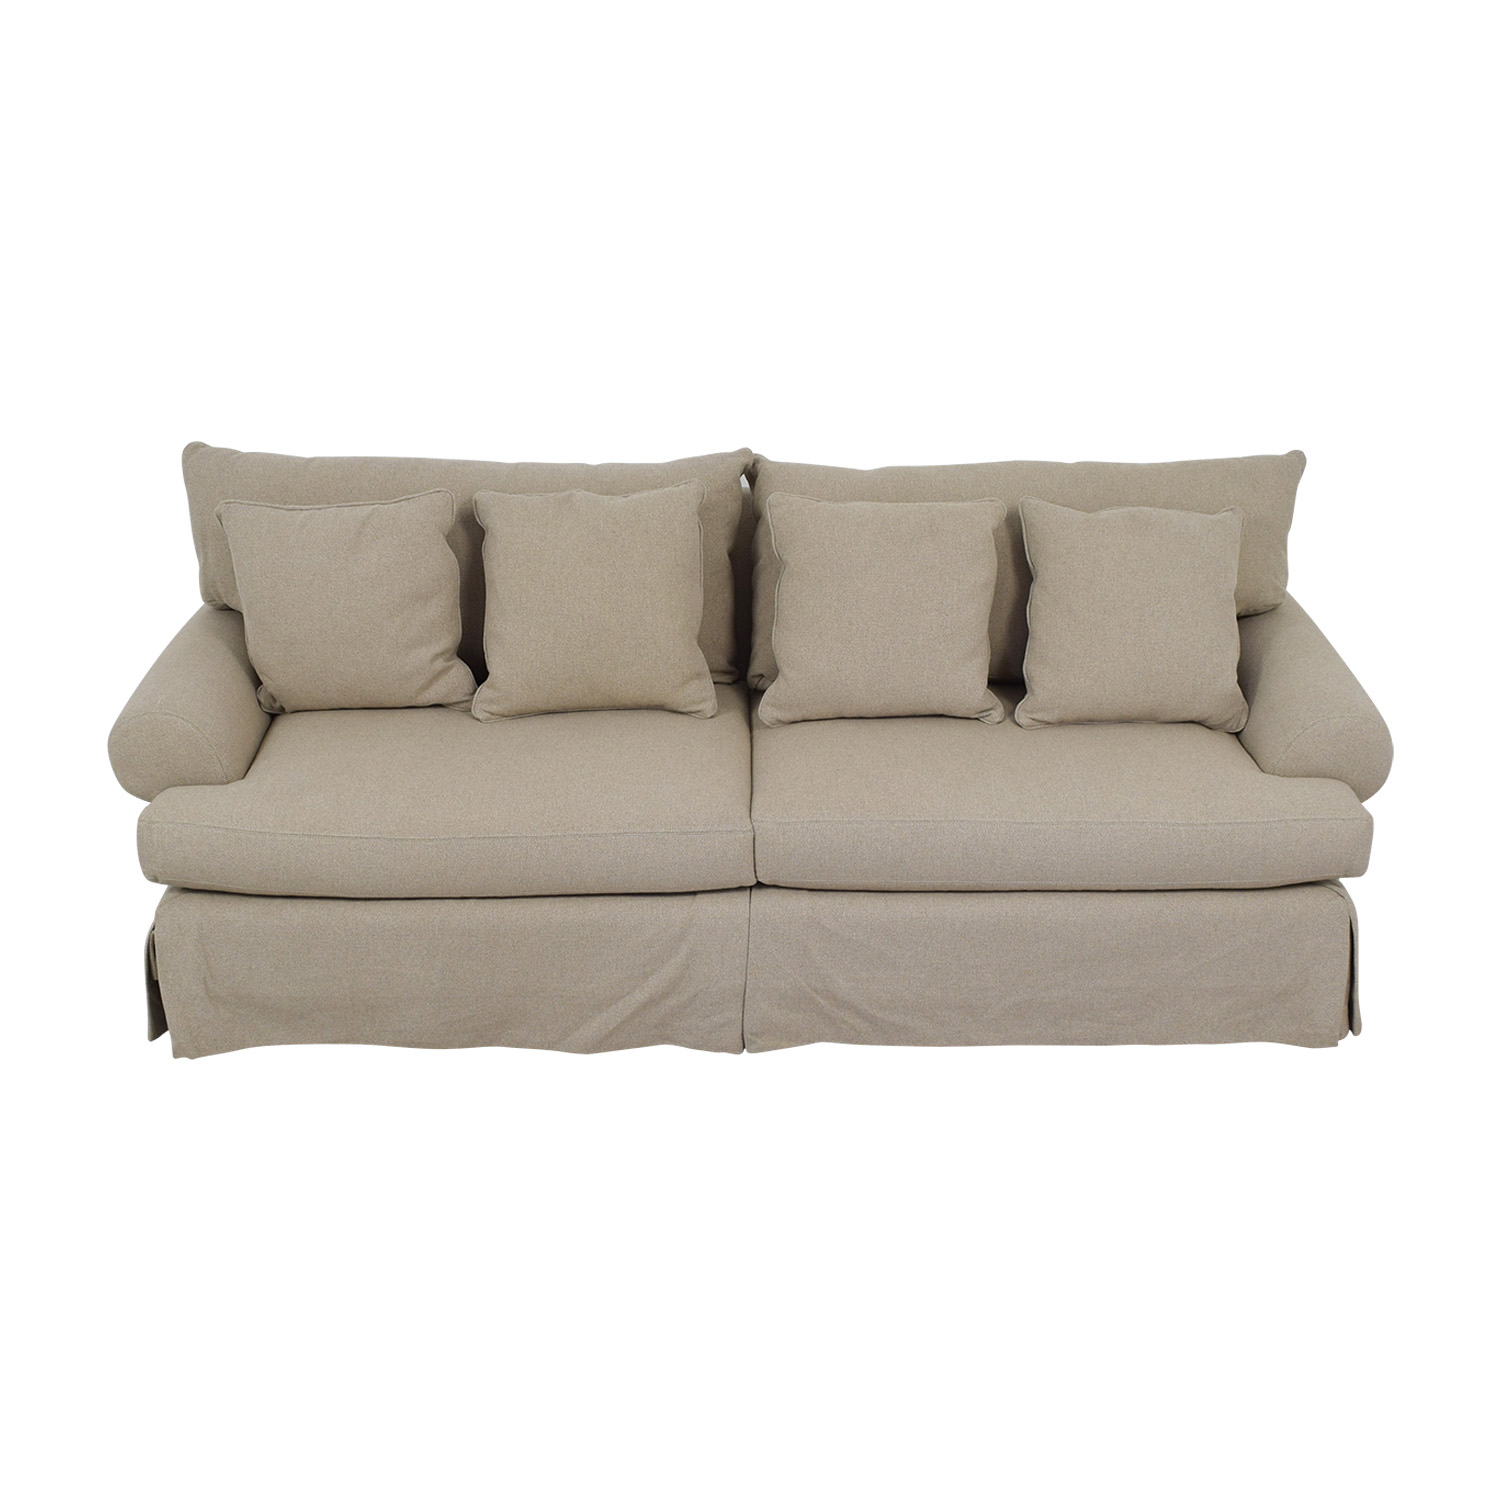 Neiman Marcus Neiman Marcus Keystone Grey Two-Cushion Sofa nyc